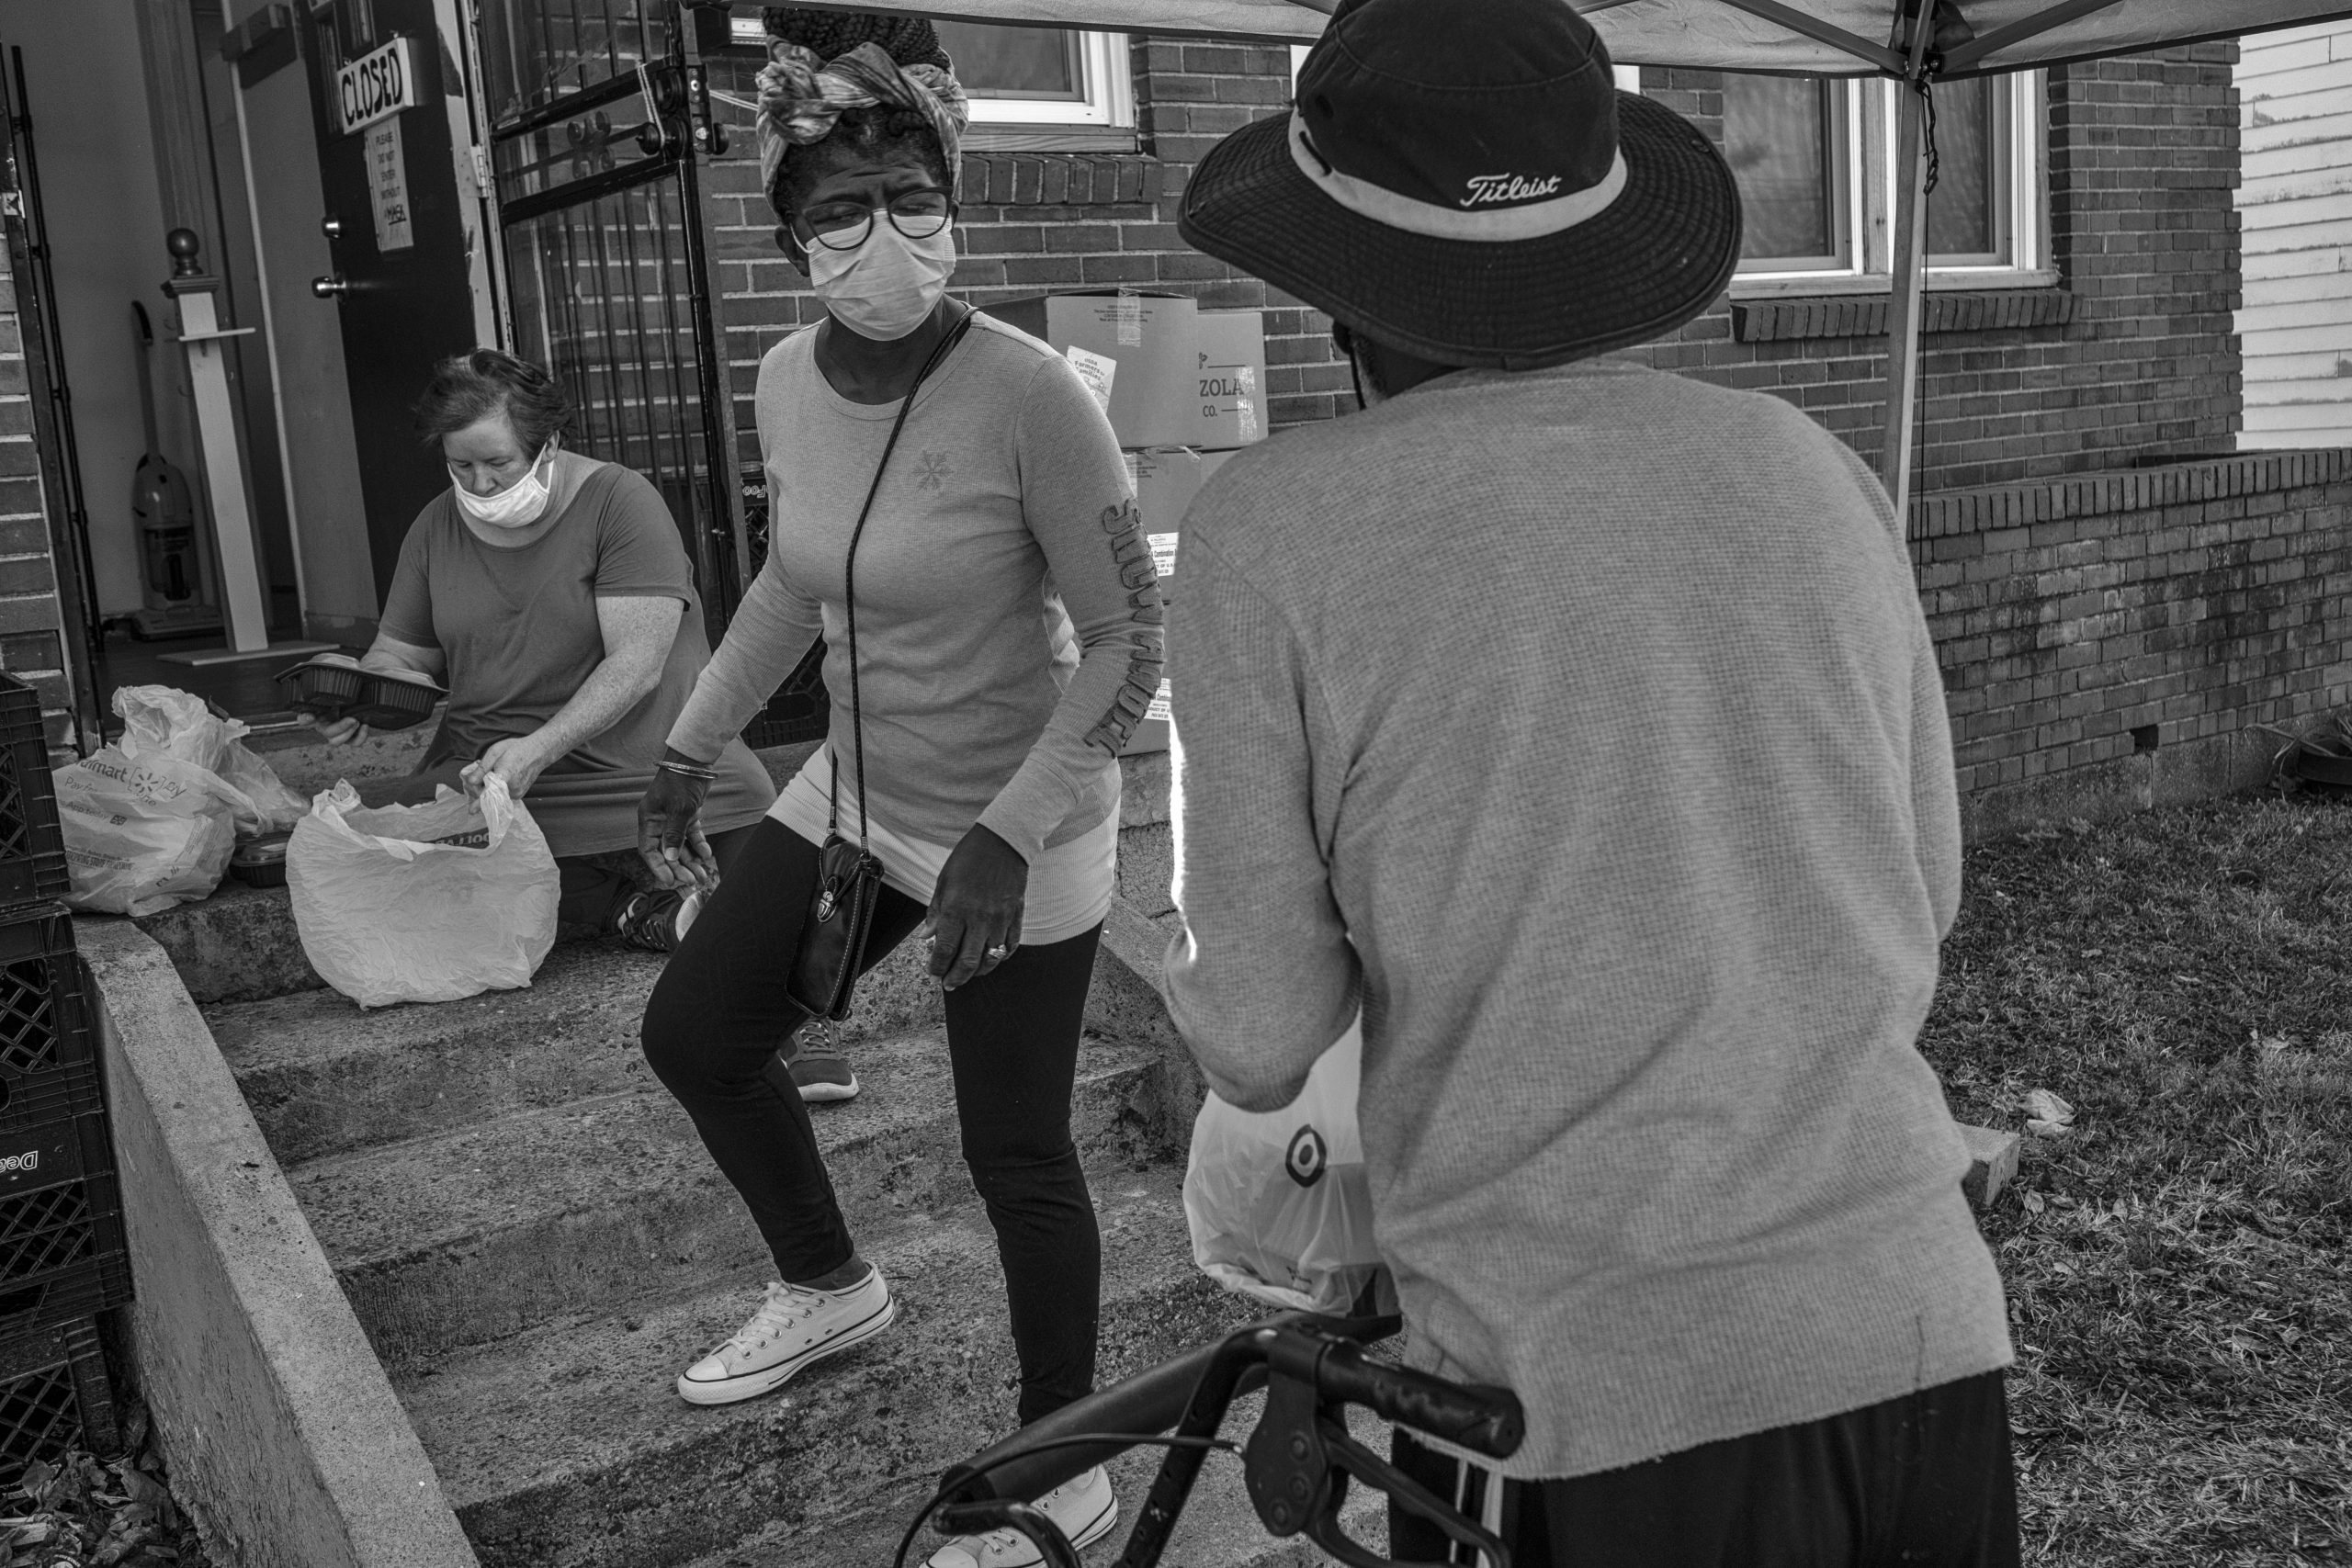 """Quanita Thomas, fondly known as """"Q"""" (center) hands out a food basket to Carlos Williams who lives in the North Nashville neighborhood. Thomas is also an associate pastor at the Historic First Community Church in North Nashville. (Photo by John Partipilo"""